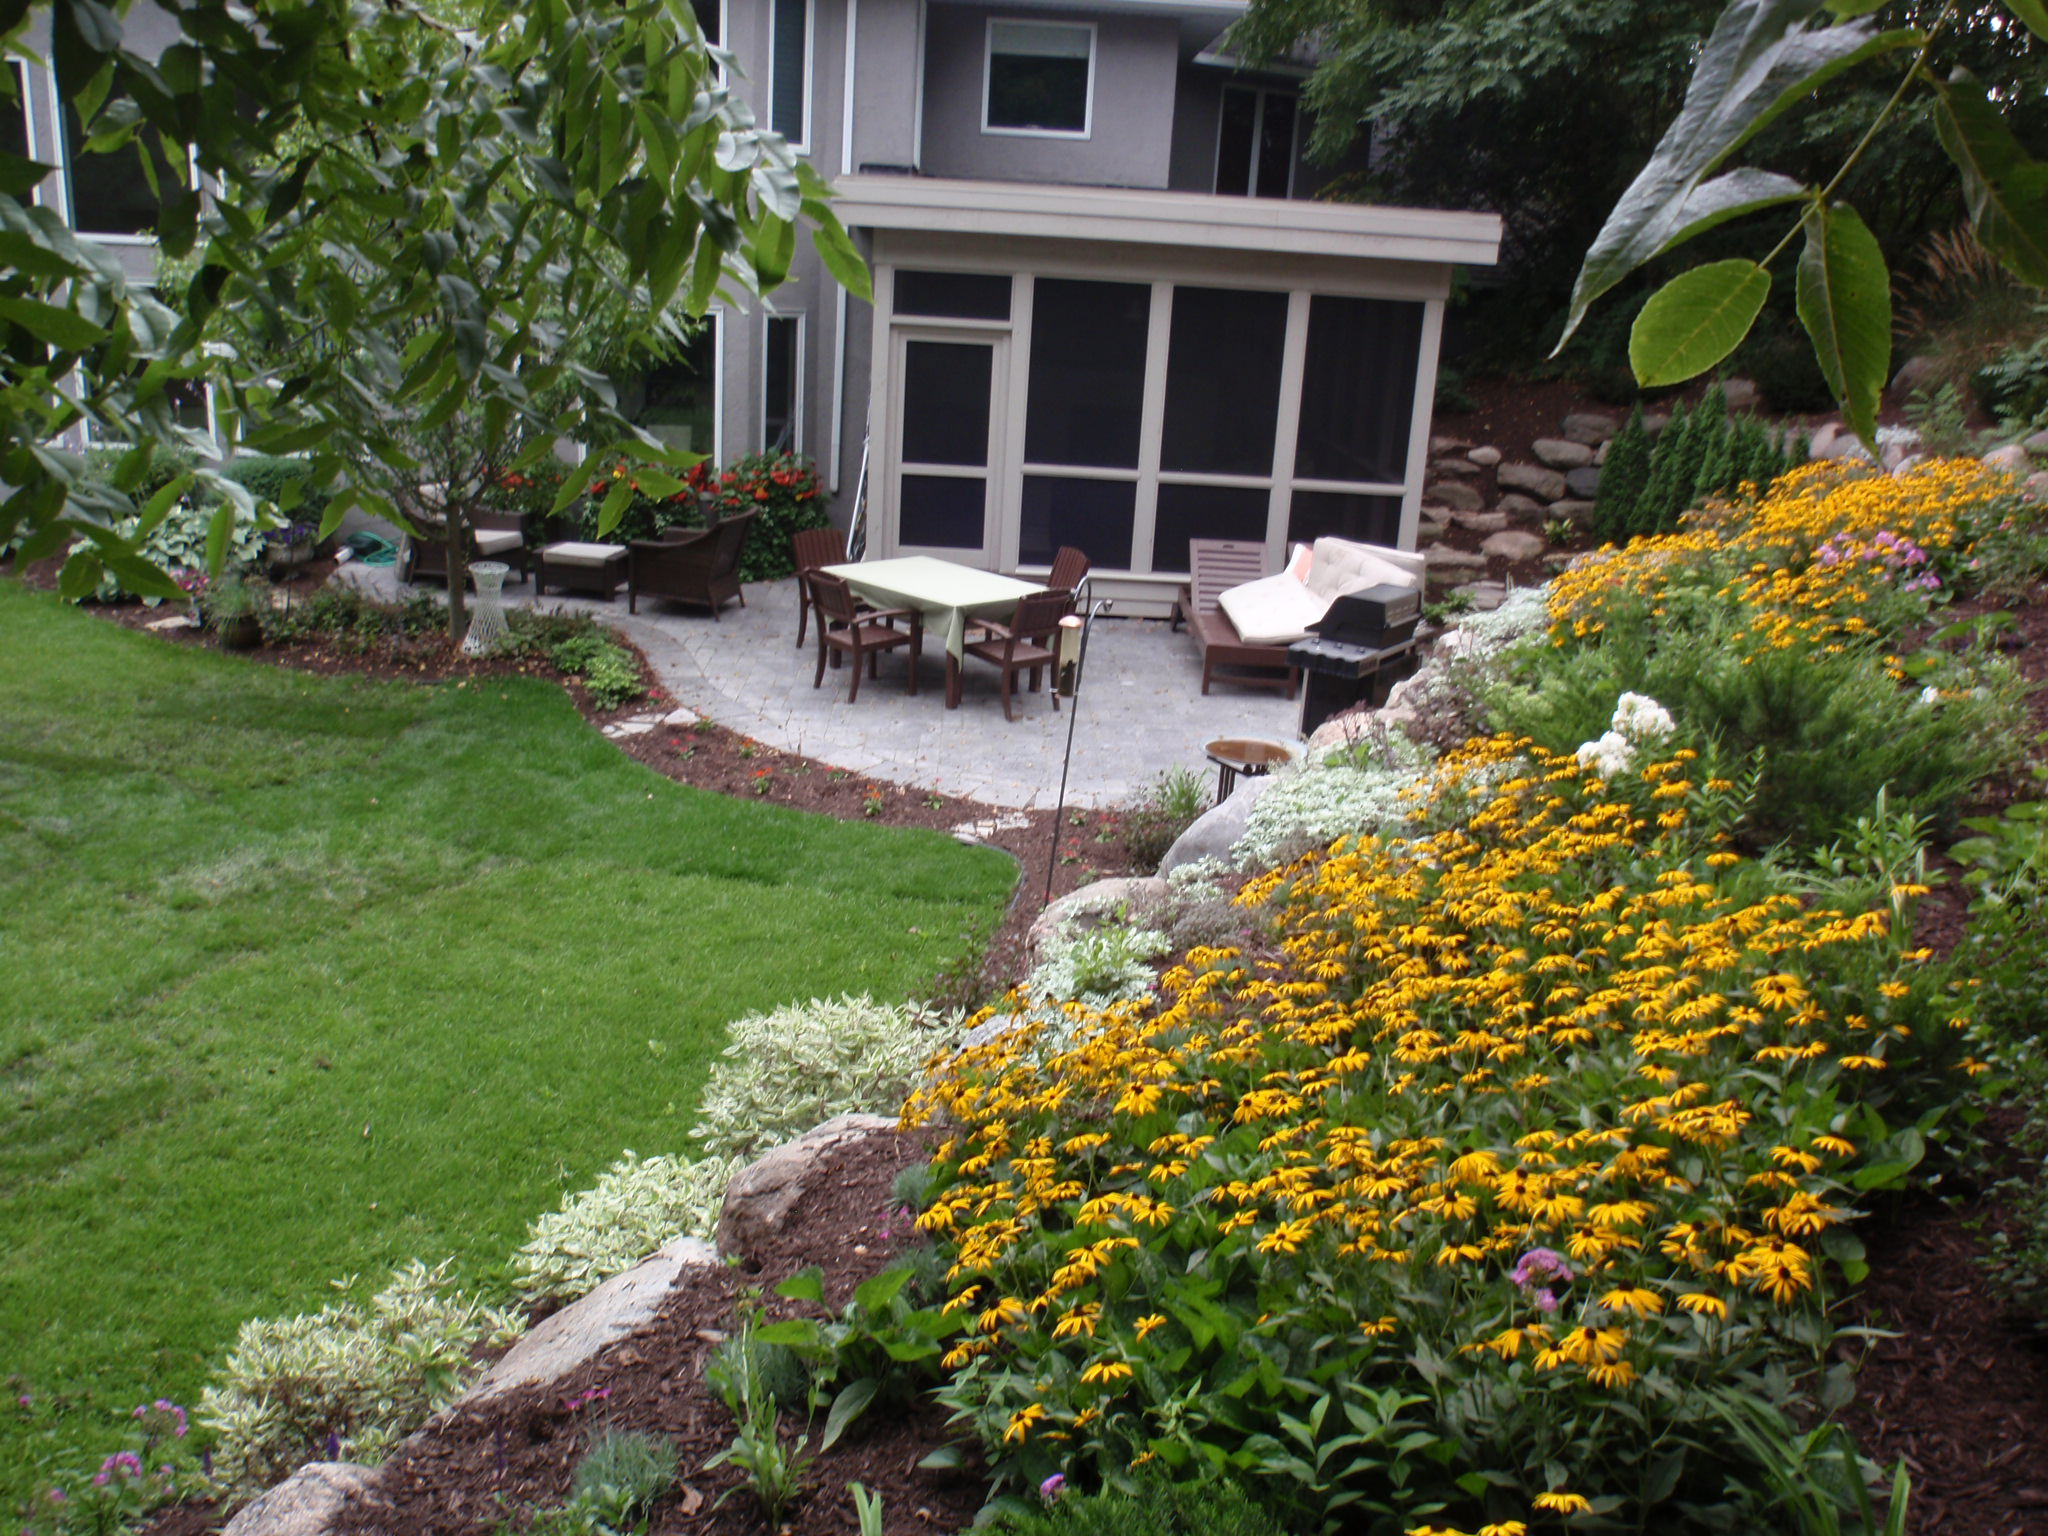 professionally landscaped yard in Minnesota